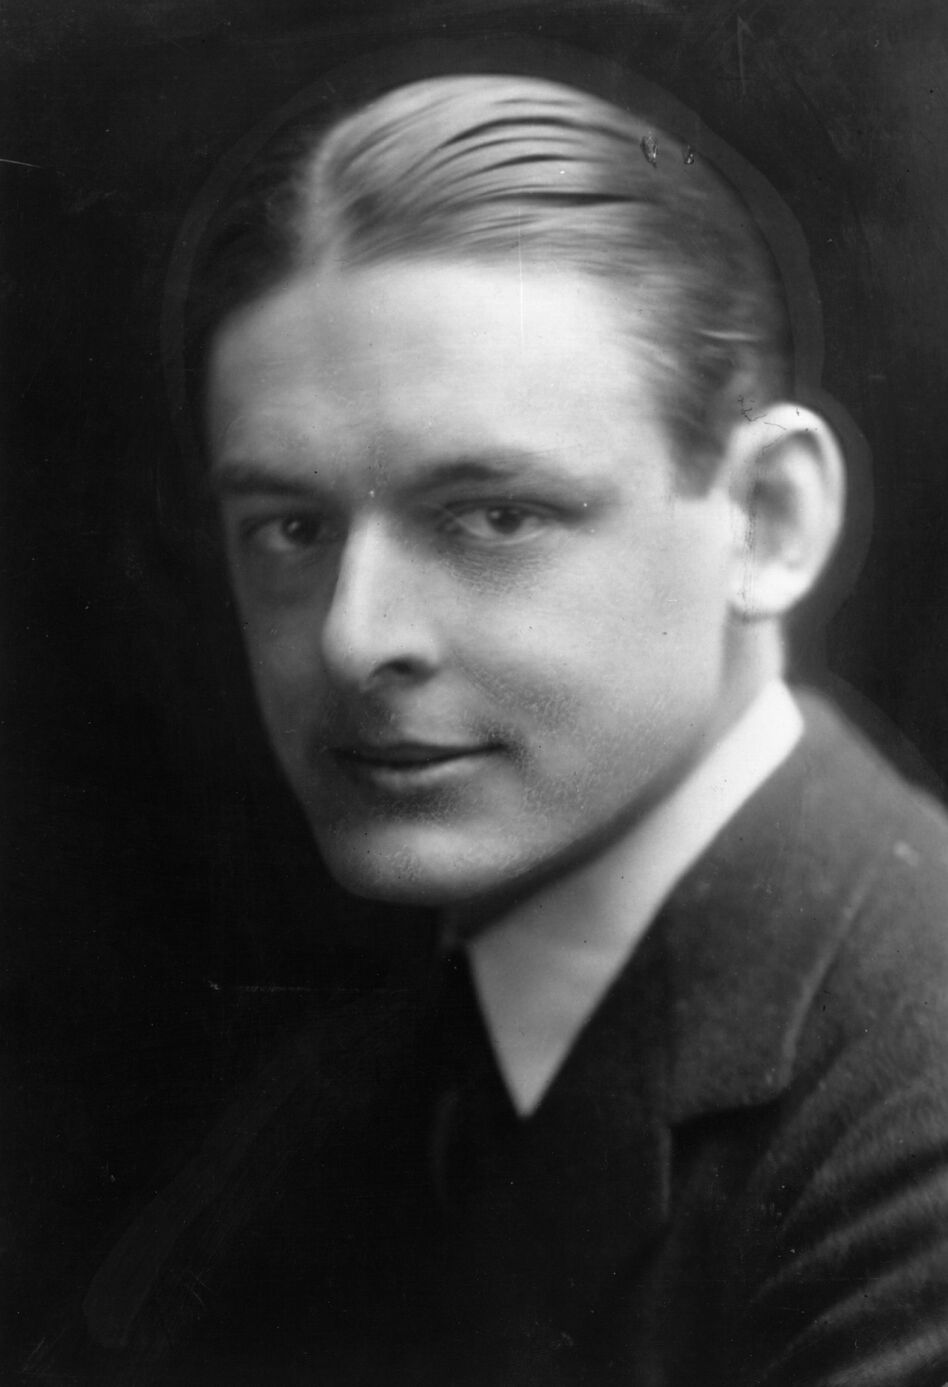 "T.S. Eliot (1888 - 1965), winner of <a href=""http://www.nobelprize.org/nobel_prizes/literature/laureates/1948/eliot-bio.html"">the 1948 Nobel Prize in Literature</a>"